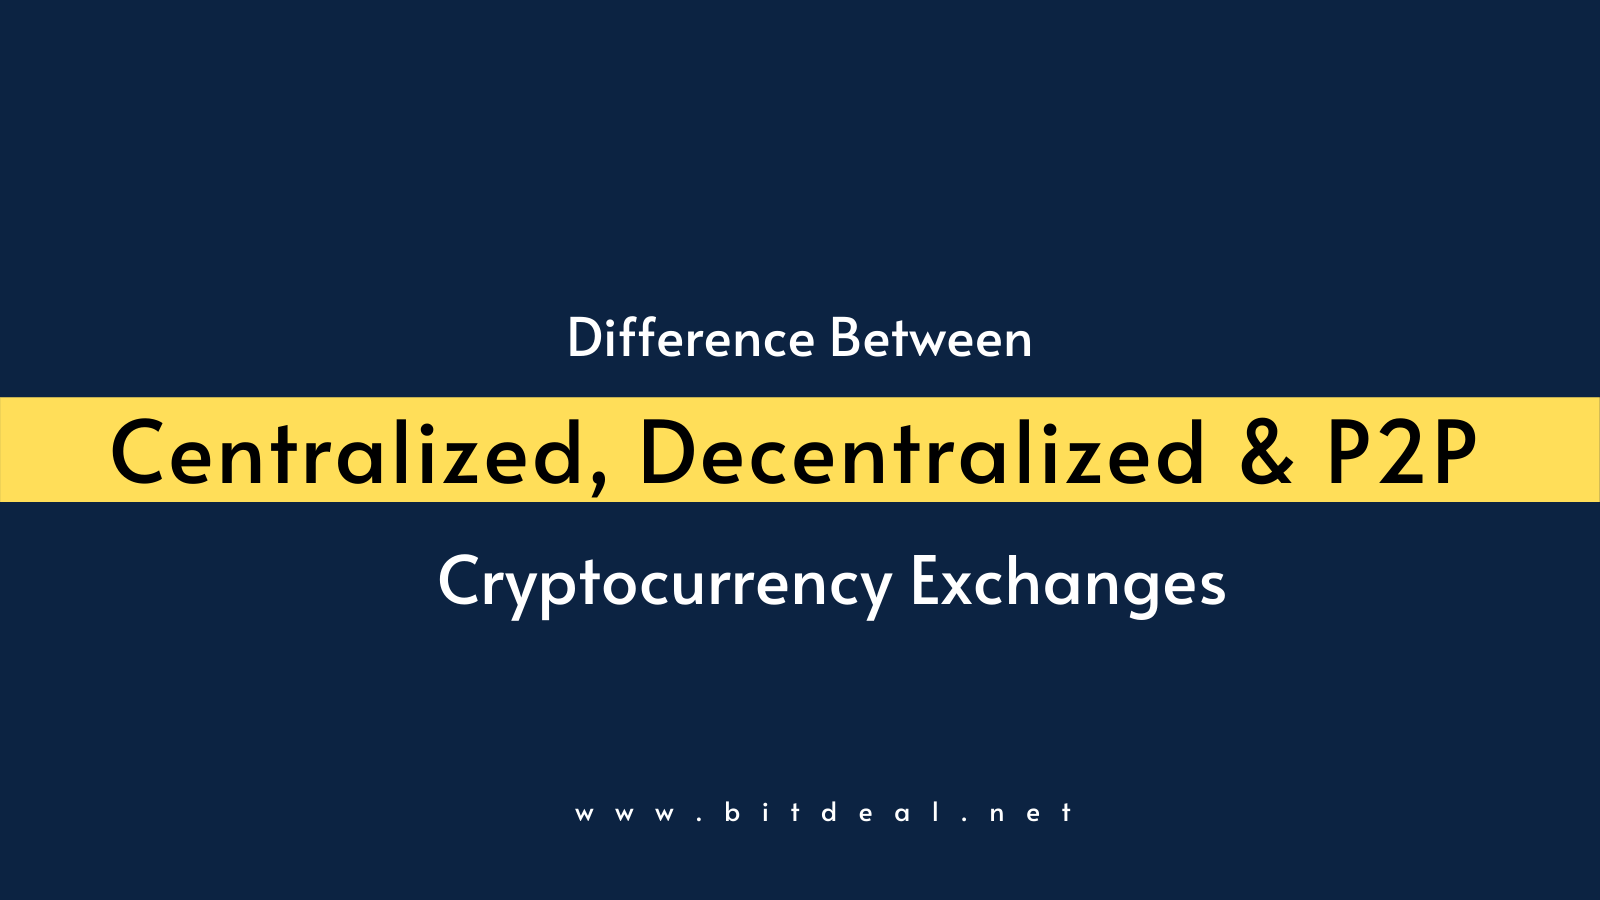 Head on Head Comparison Between Centralized, Decentralized and P2P Cryptocurrency Exchanges